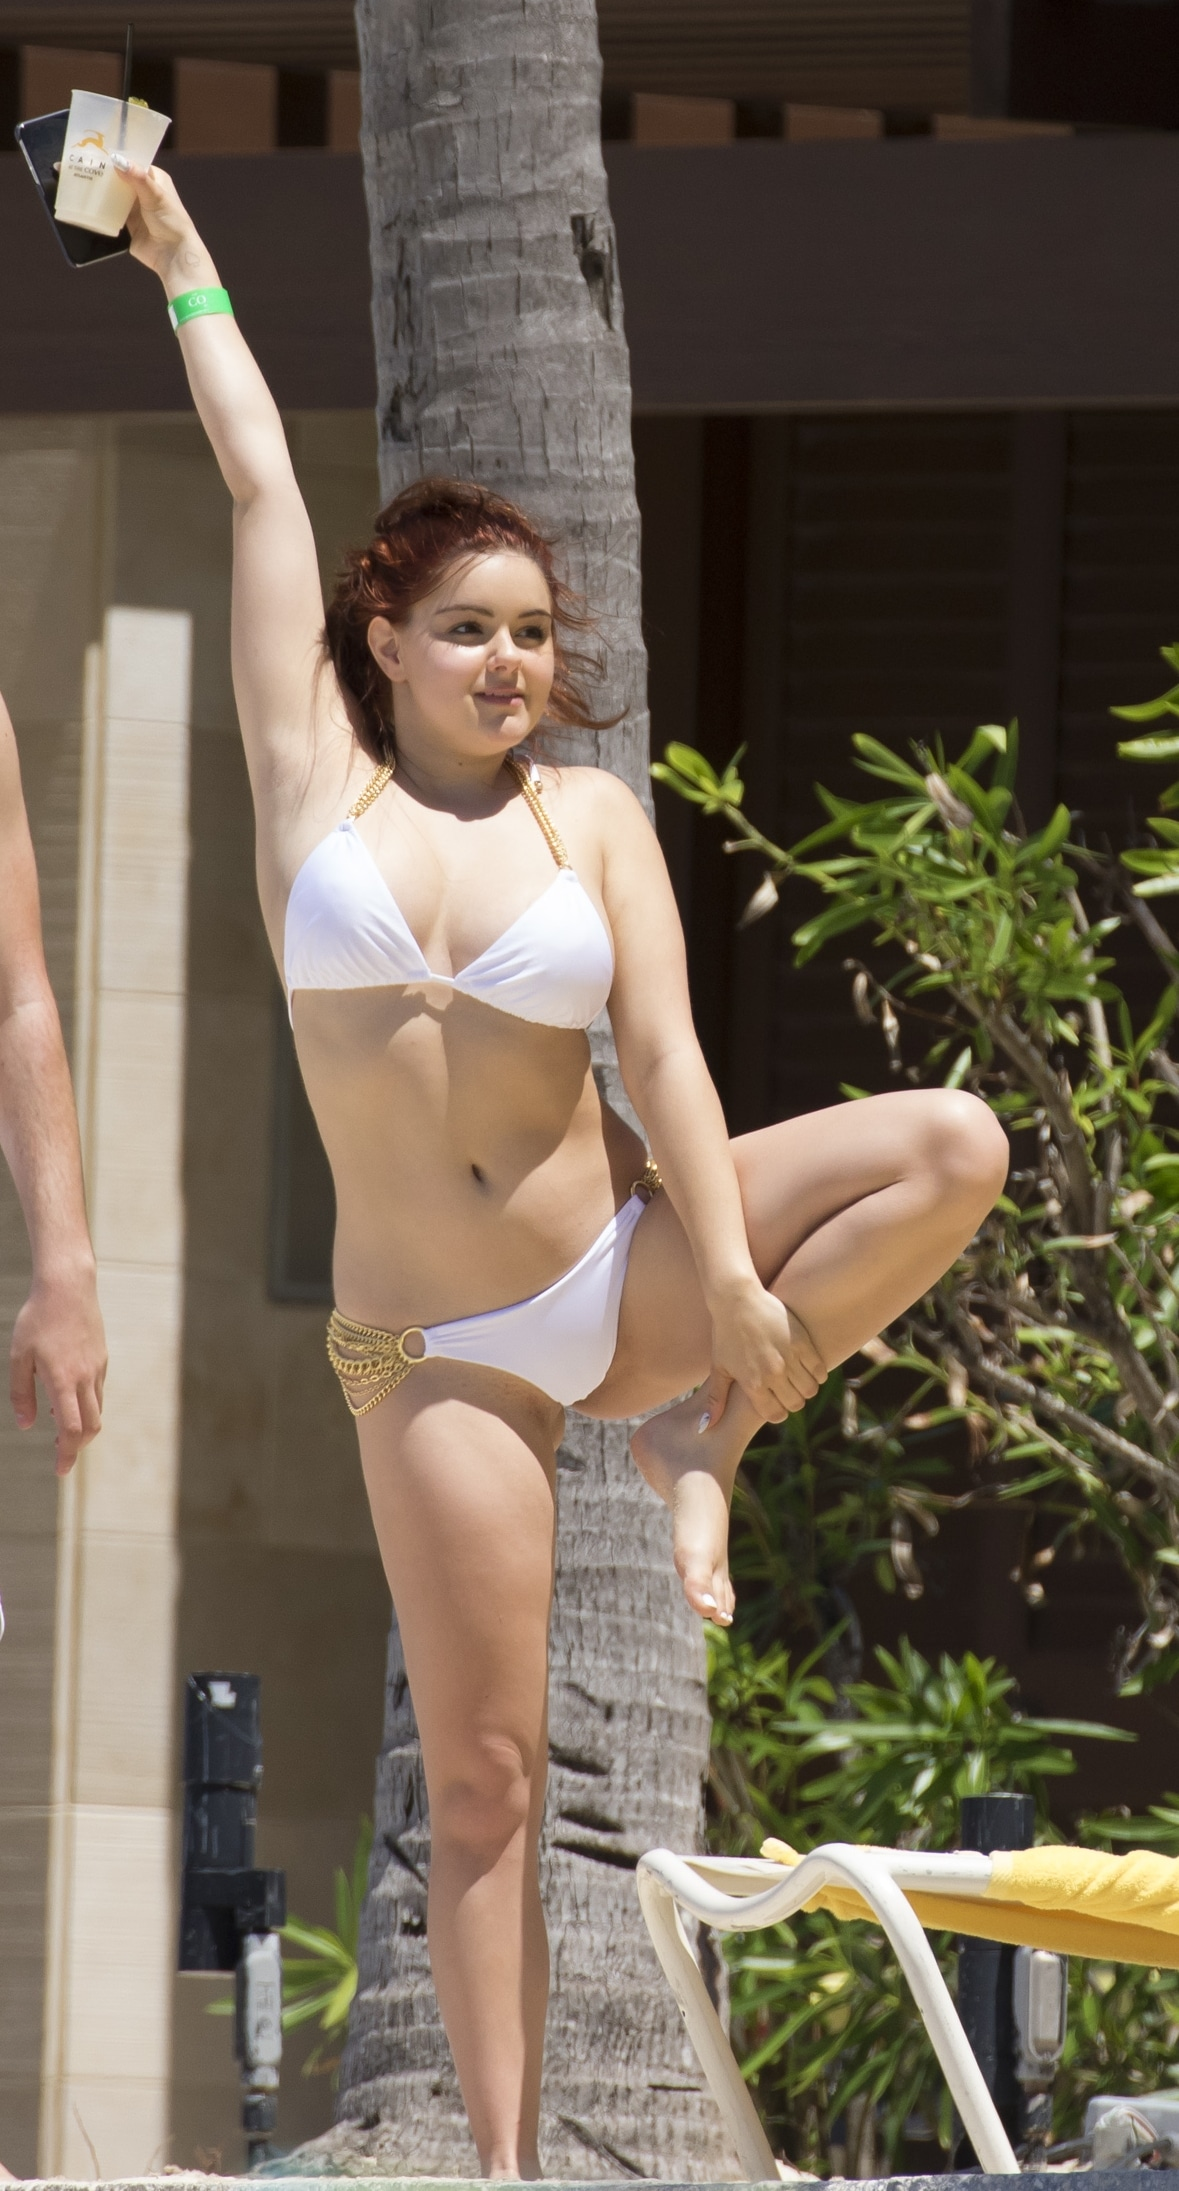 [WOW] Ariel Winter NUDE Leaked Photos! *NEW PICS*